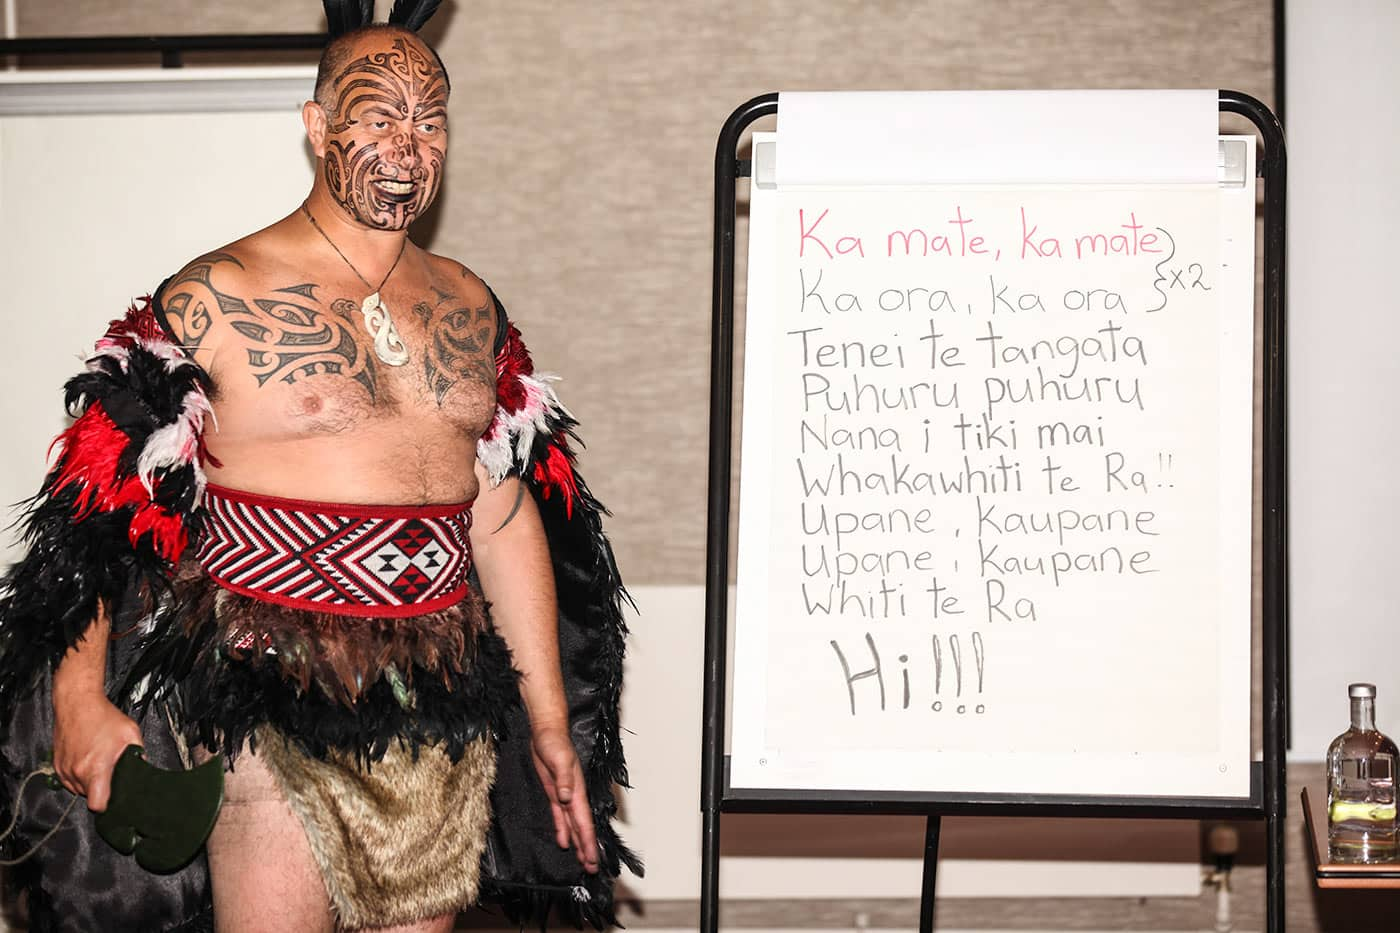 Words of the Haka